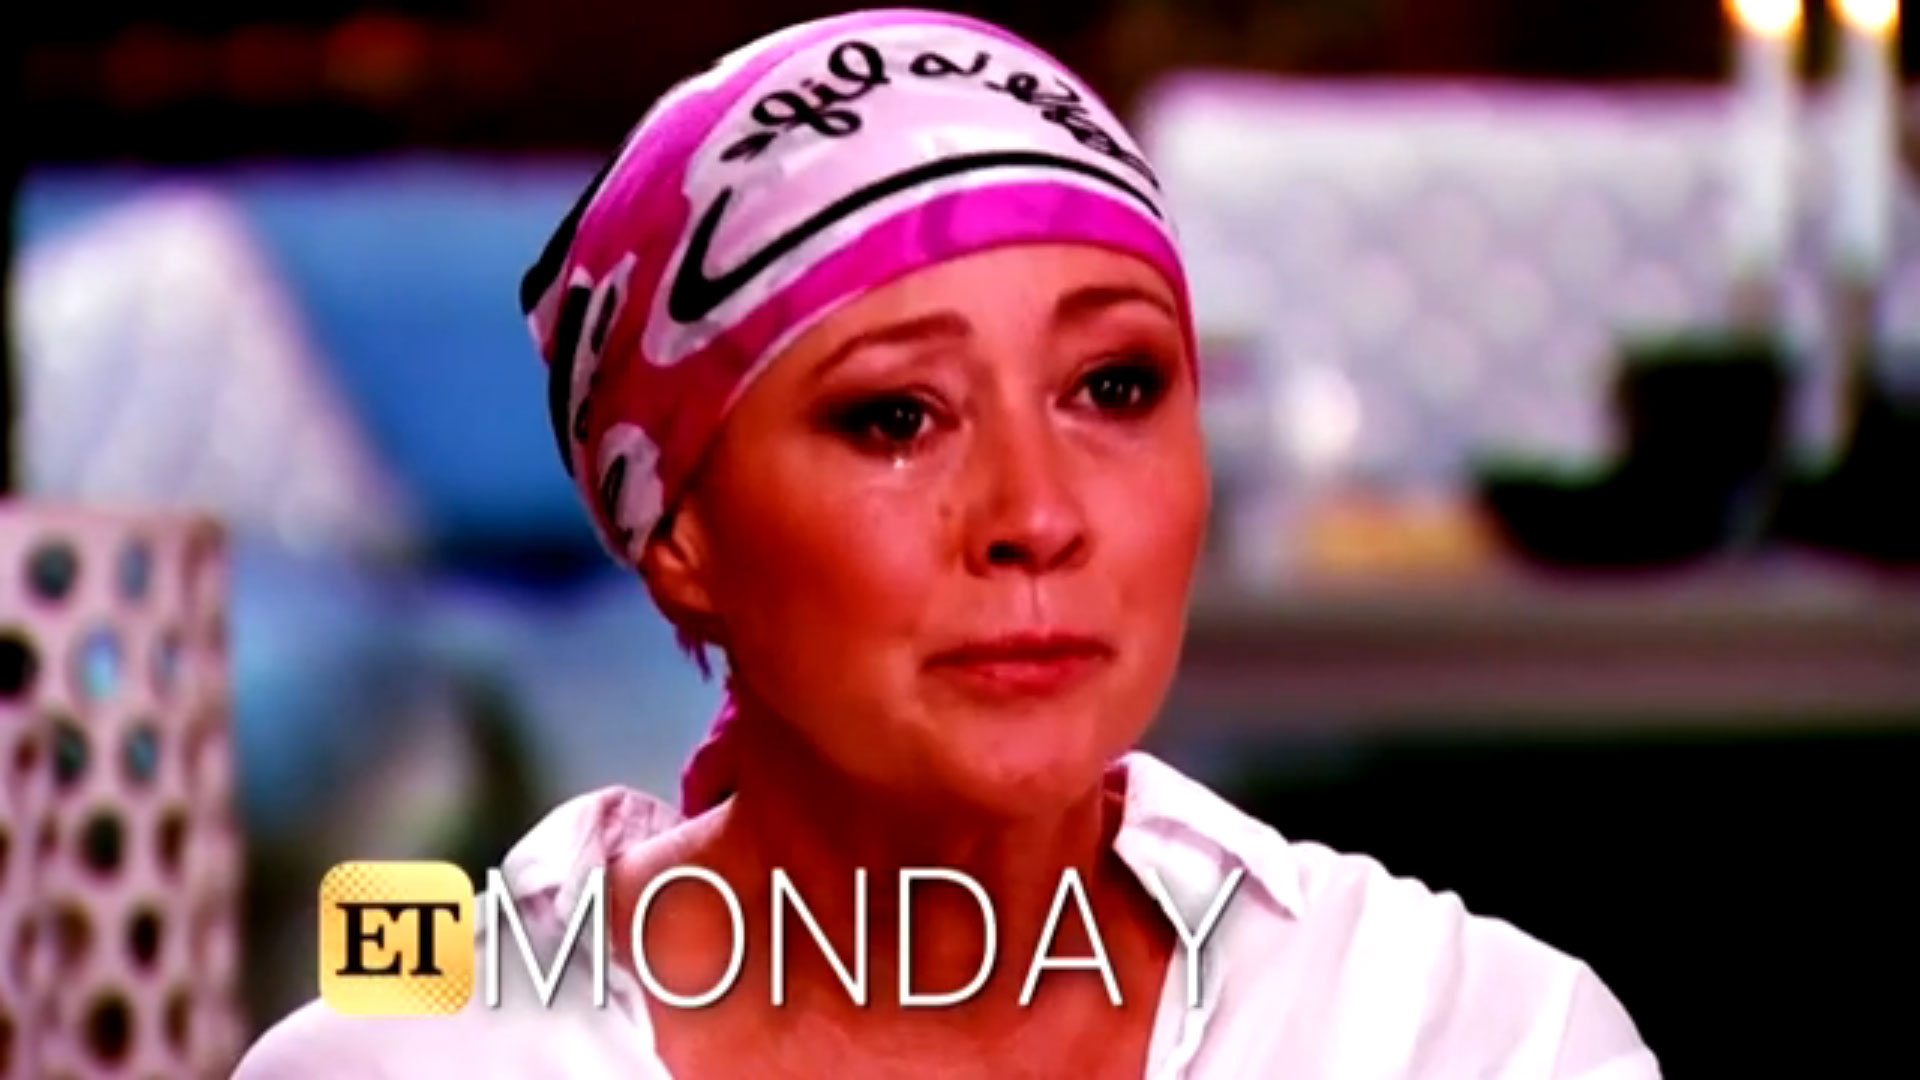 Shannon Doherty breaks down as she opens up on cancer battle